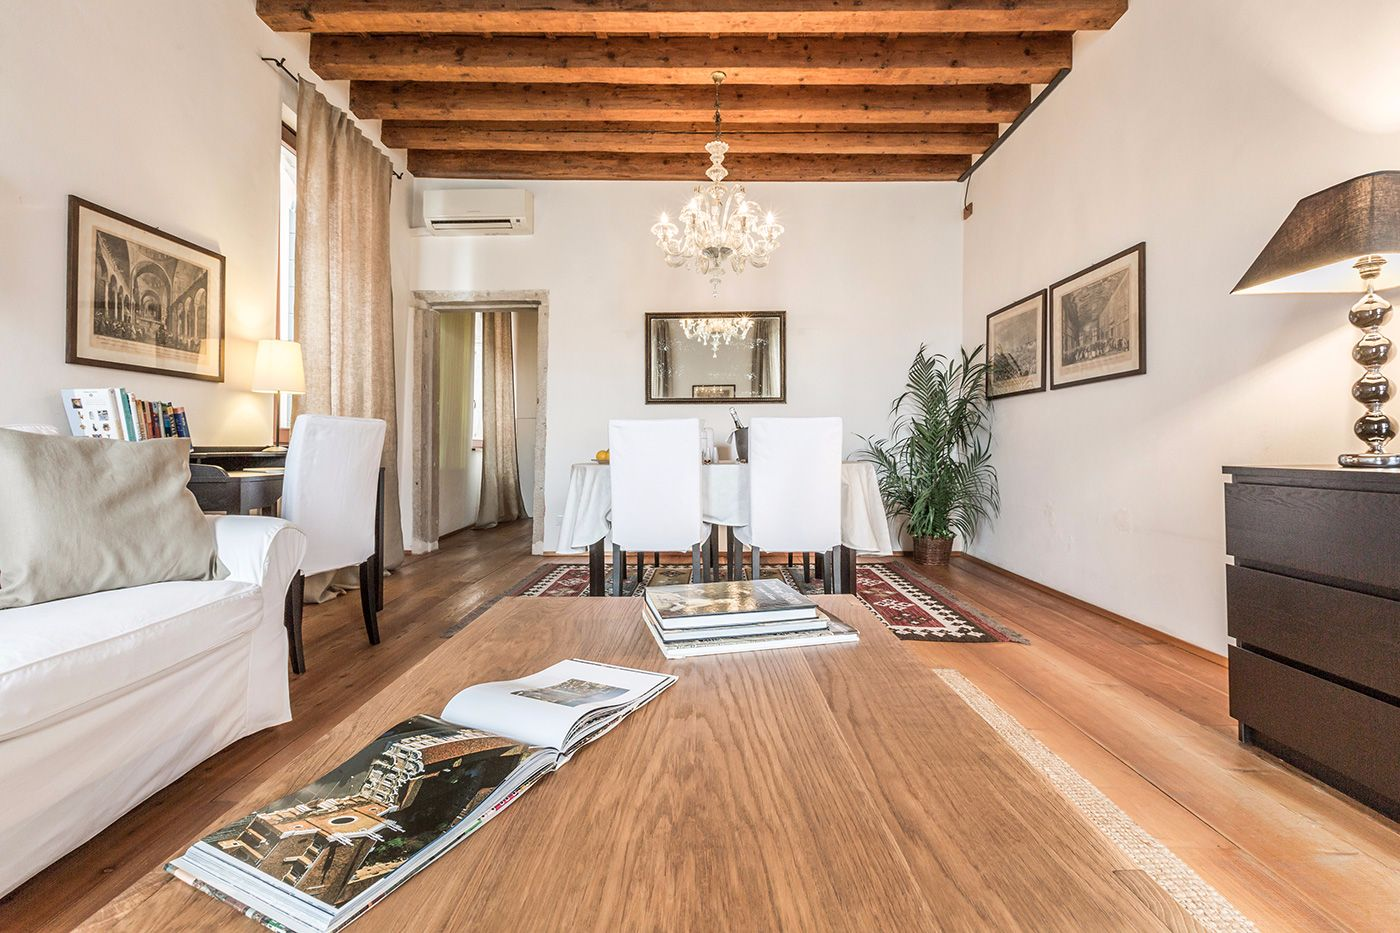 the Alba d'Oro is equipped with Wi-Fi, Satellite TV, DVD, books and guides about Venice and much more